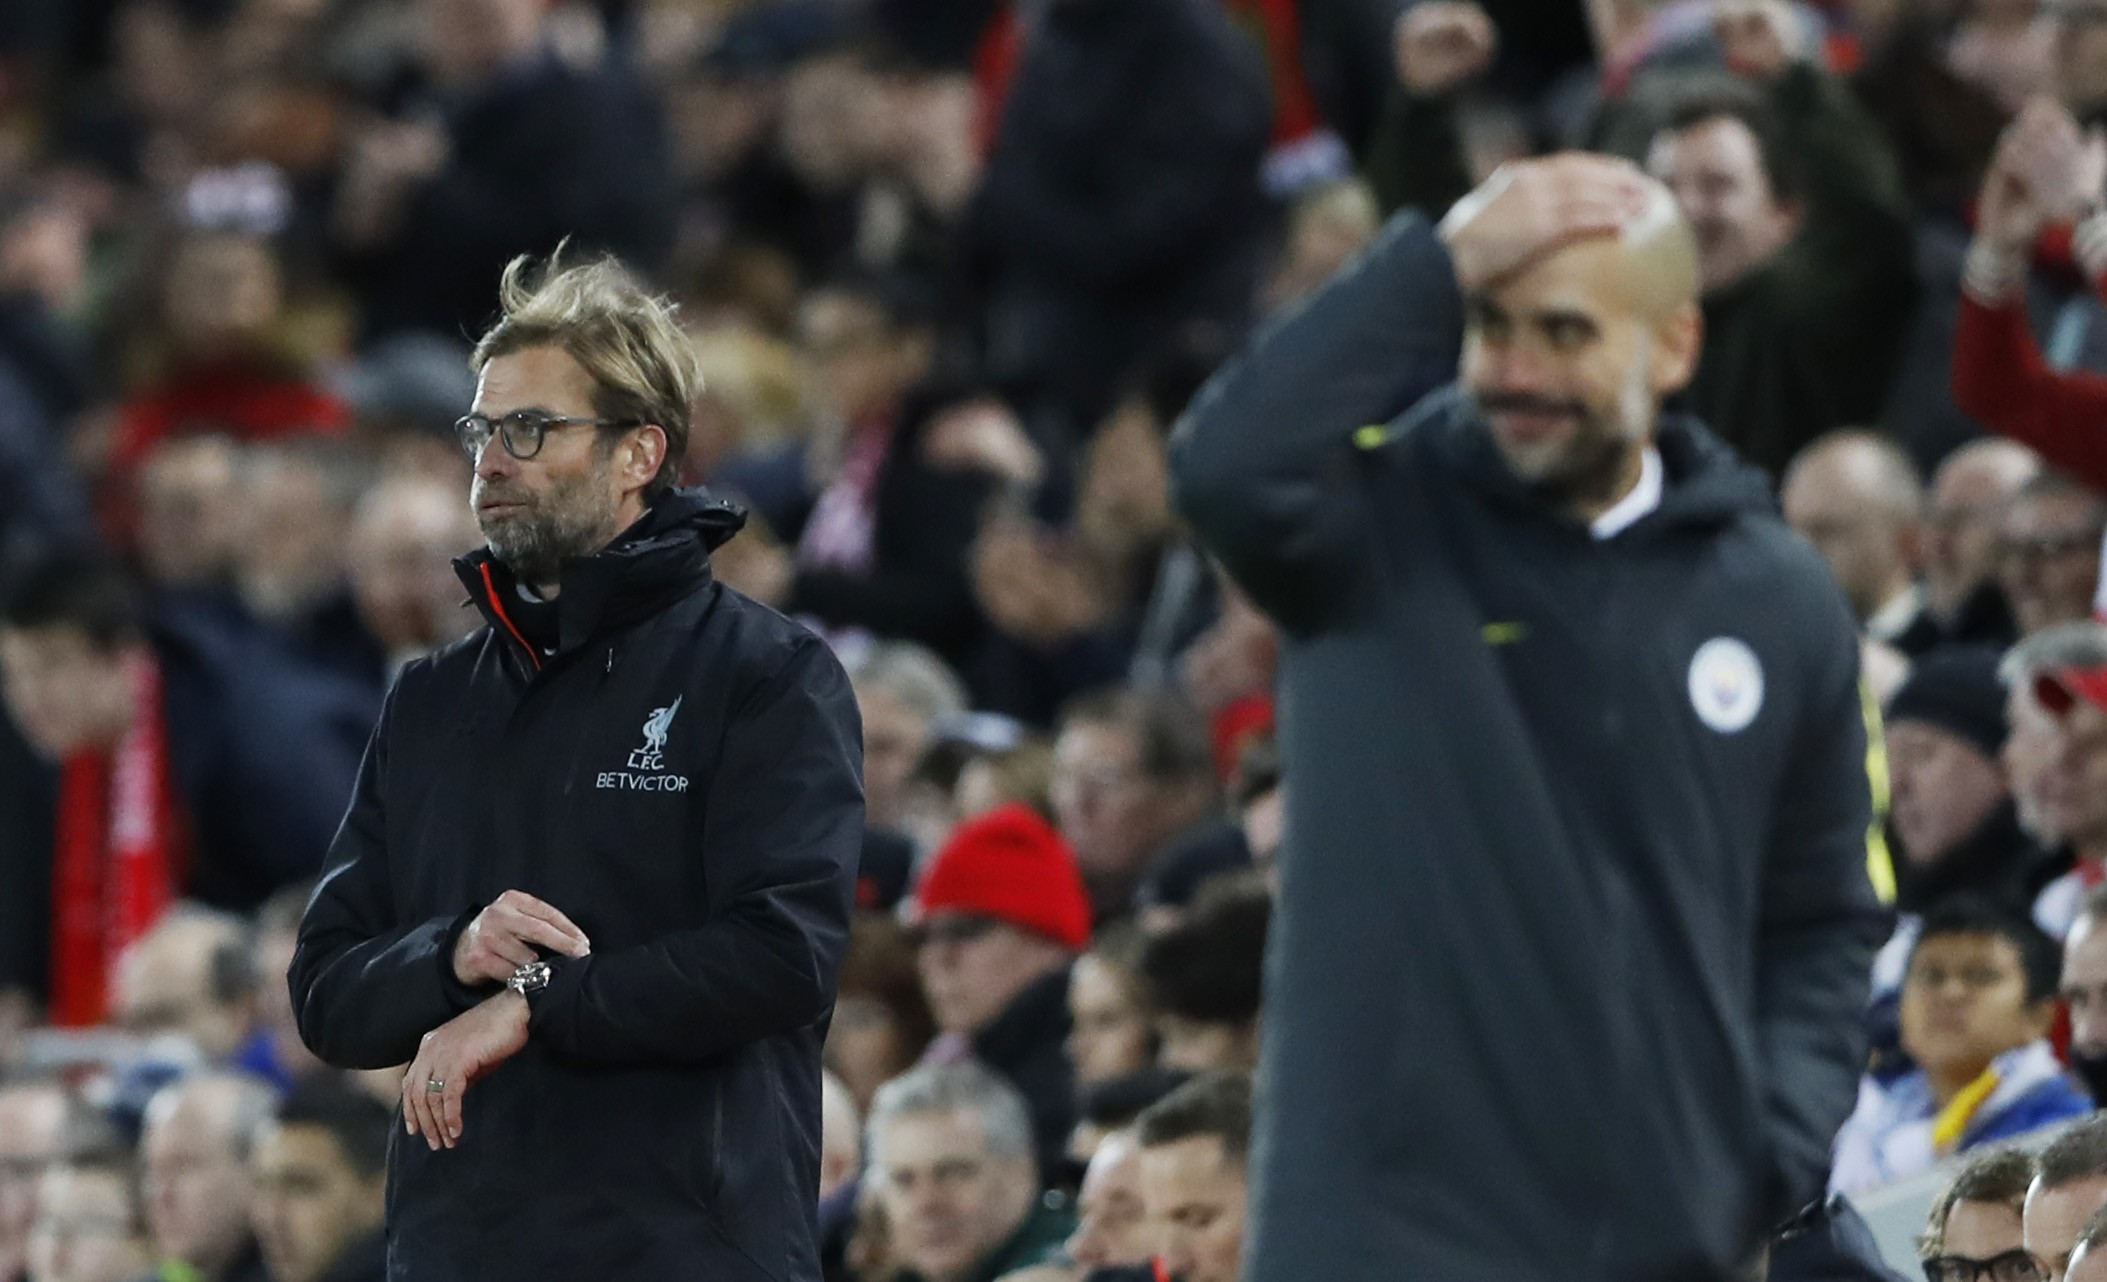 Jurgen Klopp's Liverpool and Pep Guardiola's Manchester City are the strongest challengers to Chelsea's early surge (Image credit: Reuters)